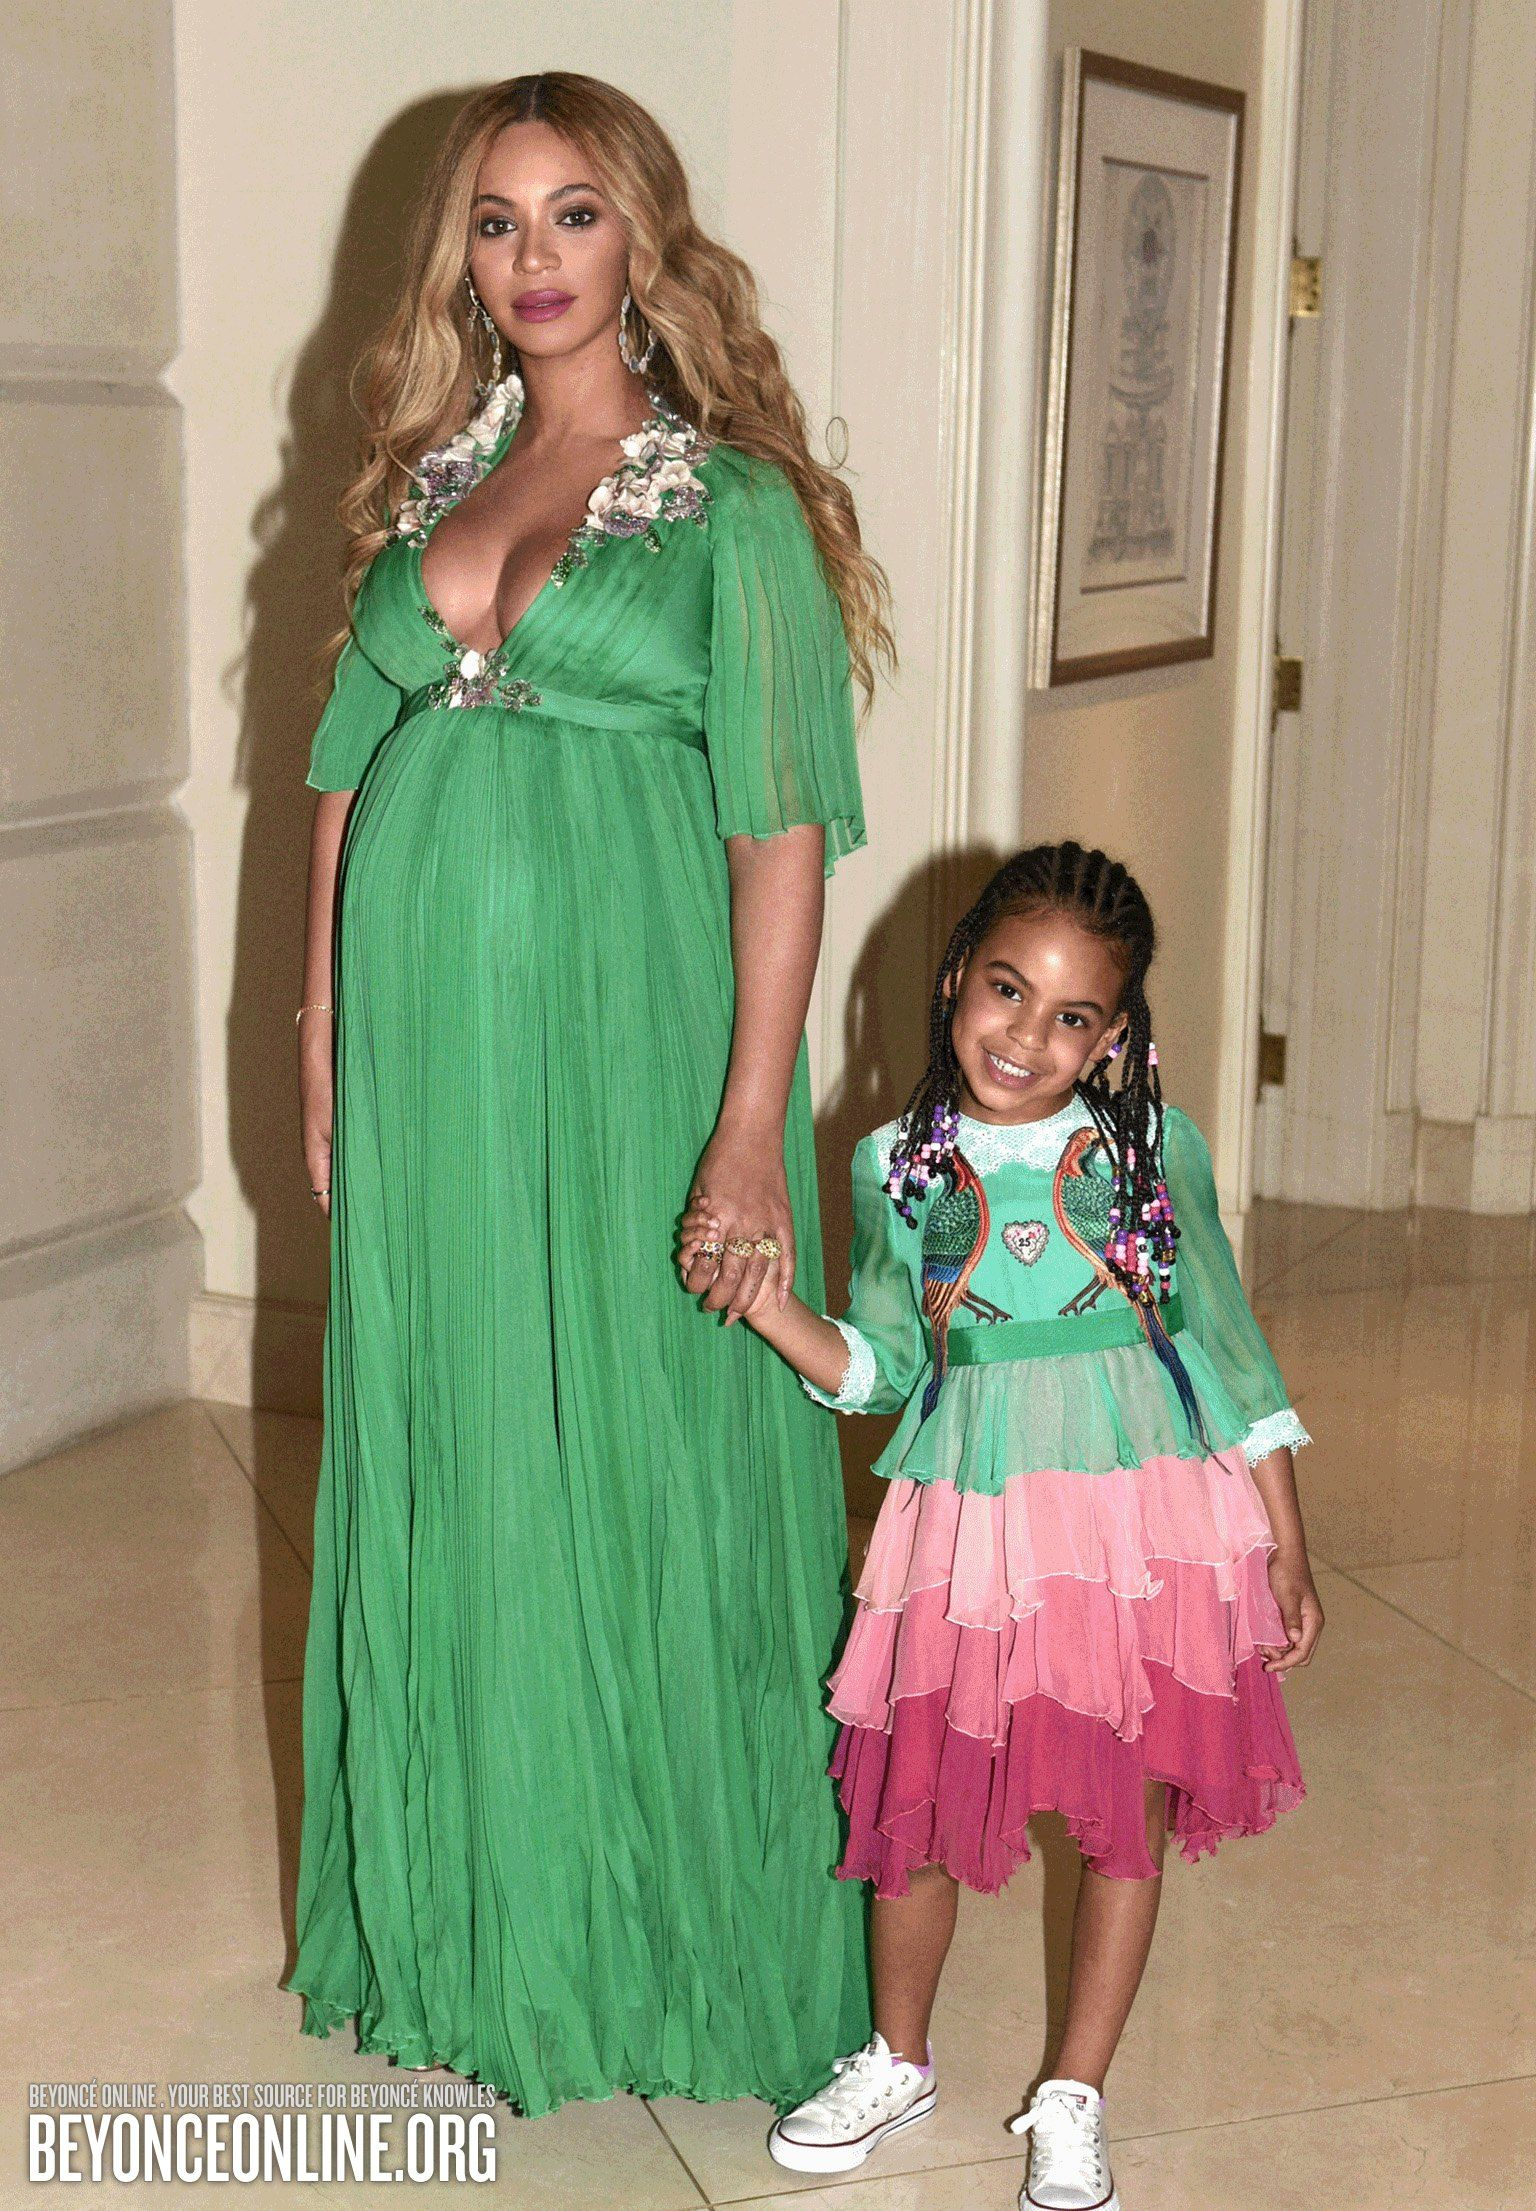 My Life Beyonce Online Photo Gallery Tiered Dress Blue Ivy Carter Fashion